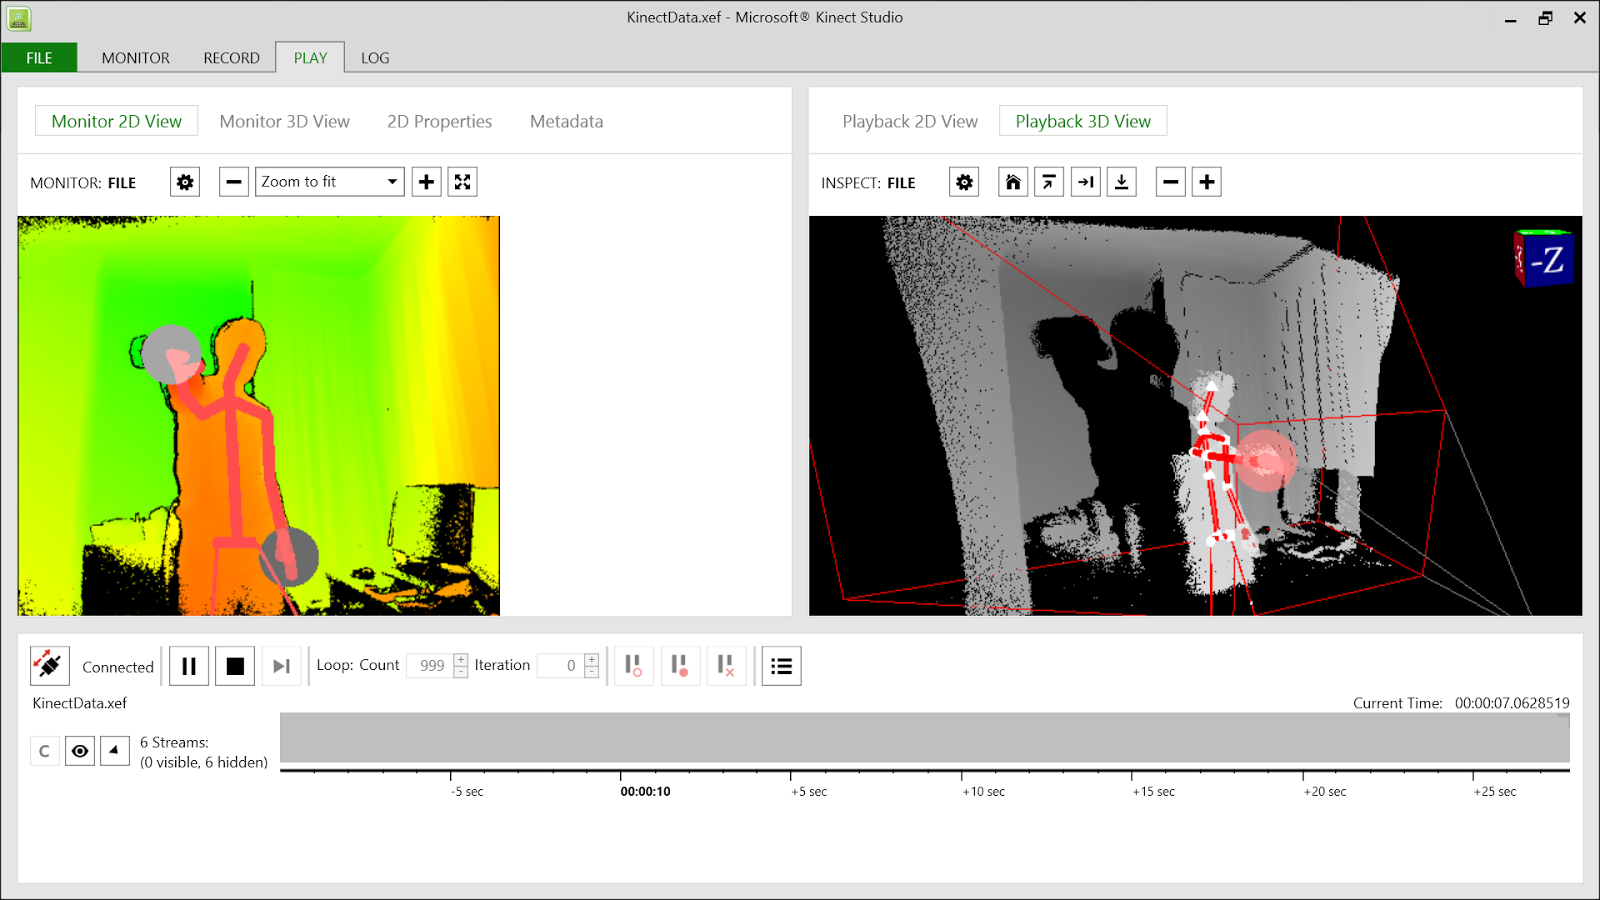 Programophone: Extracting data from Kinect V2 .xef files